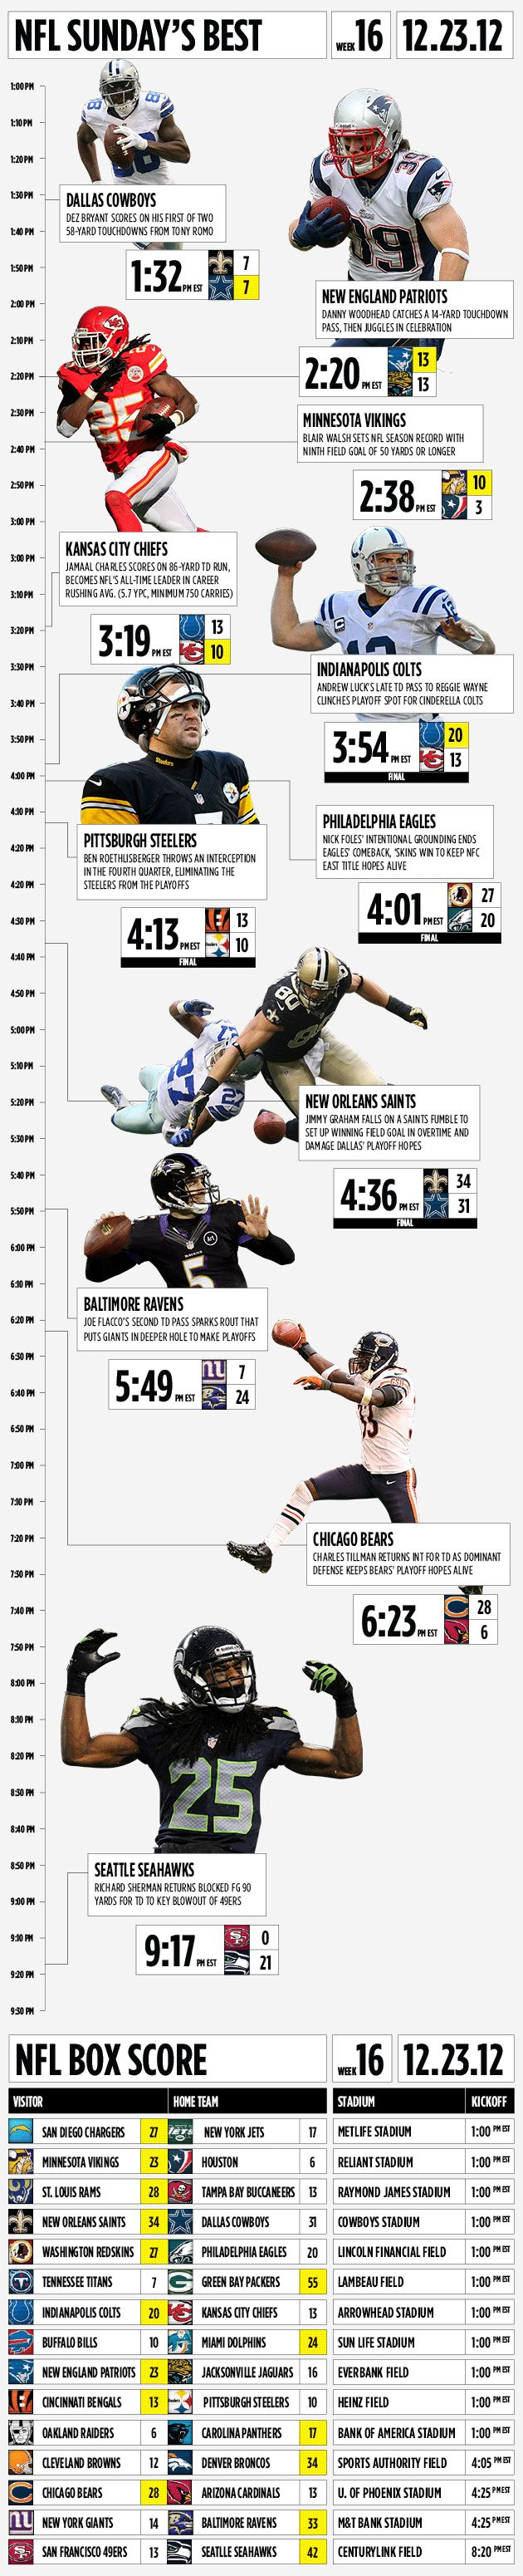 If you love NFL football, you'll love this infographic covering the highlights of football action on Sunday, December 23rd. This infographic was created by Yahoo Sports. Really cool stuff here.